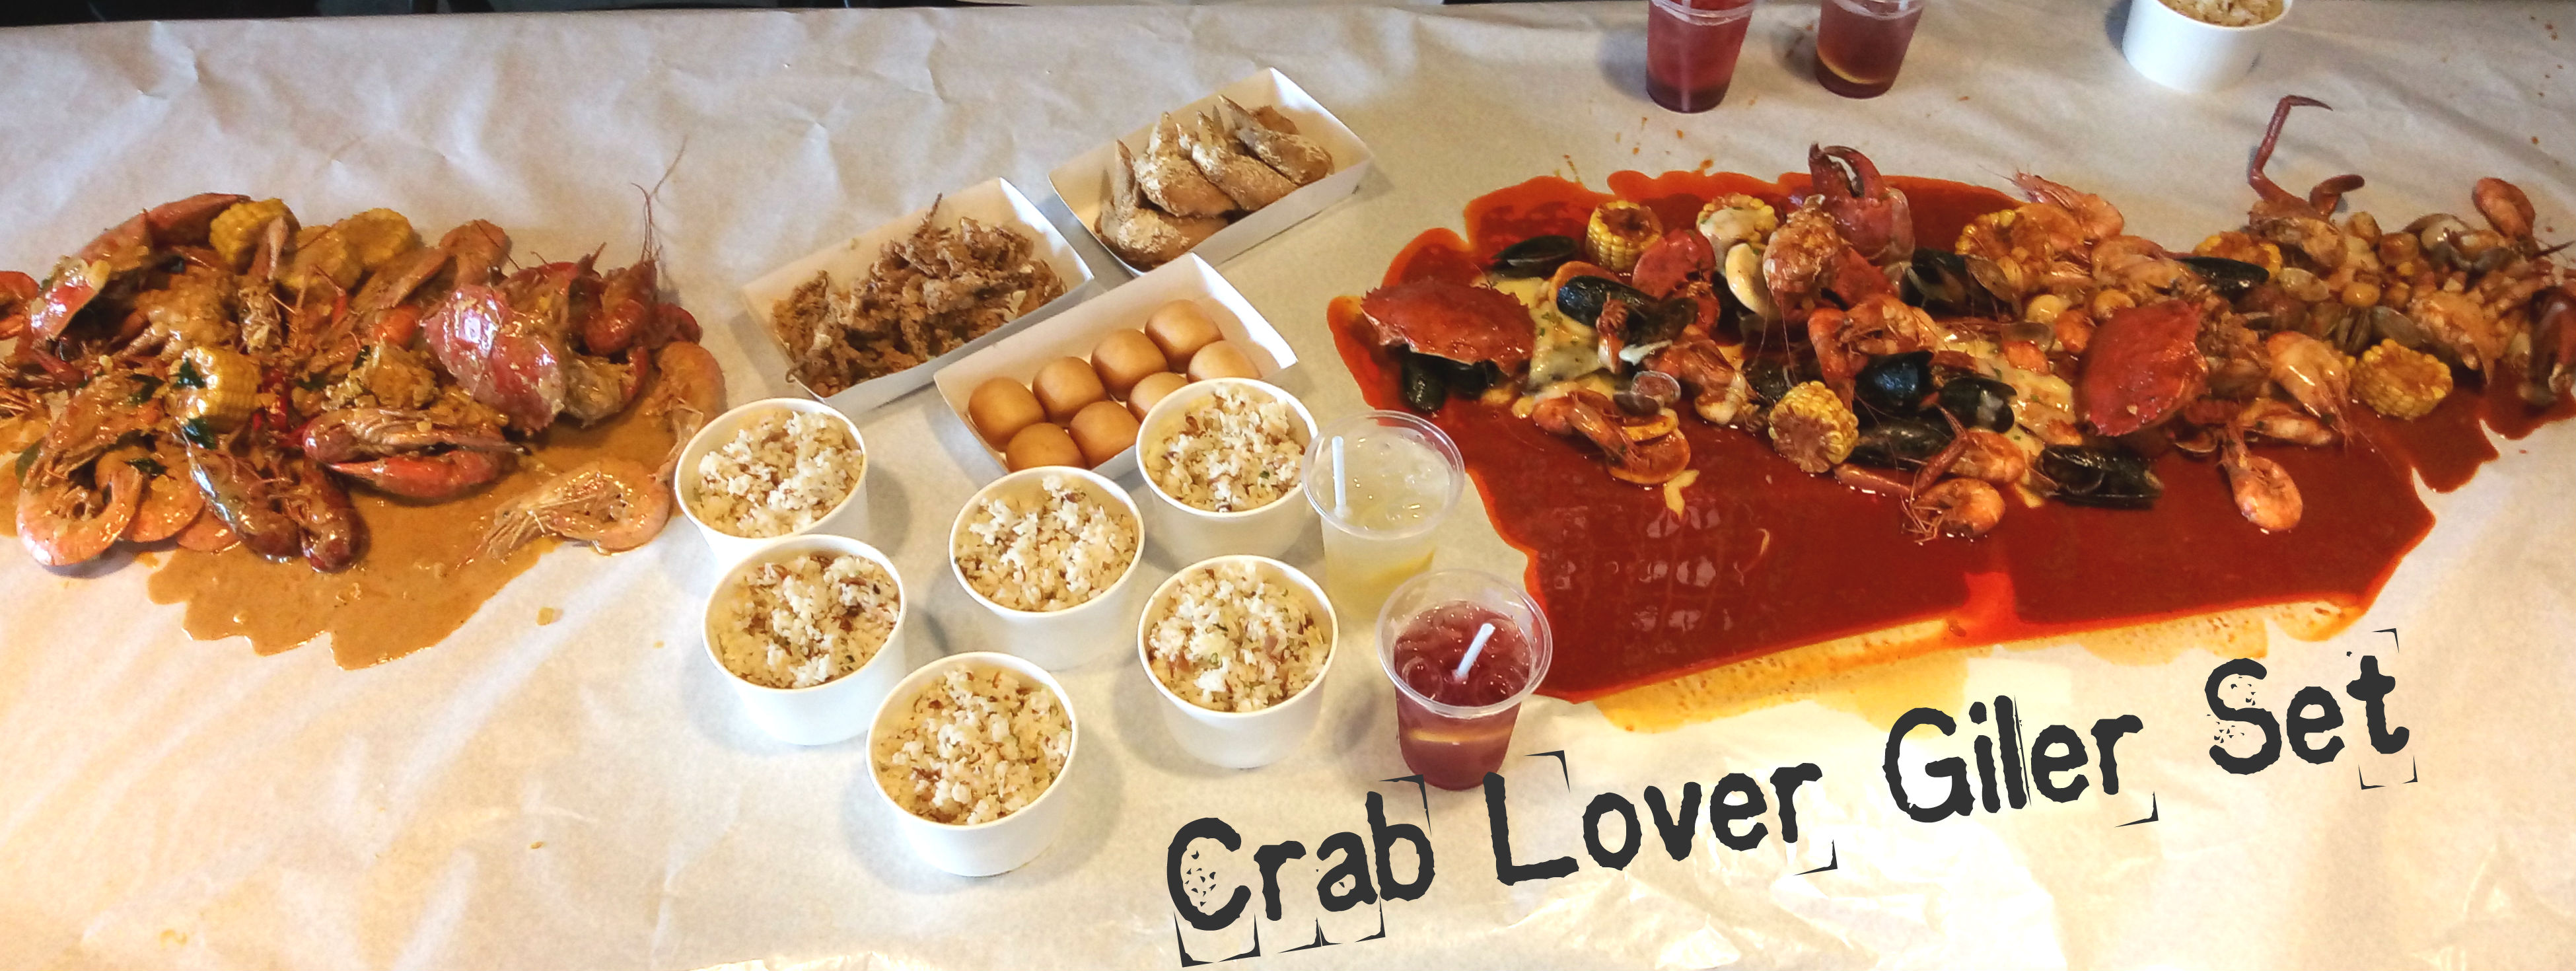 Crab Lover Giler Set